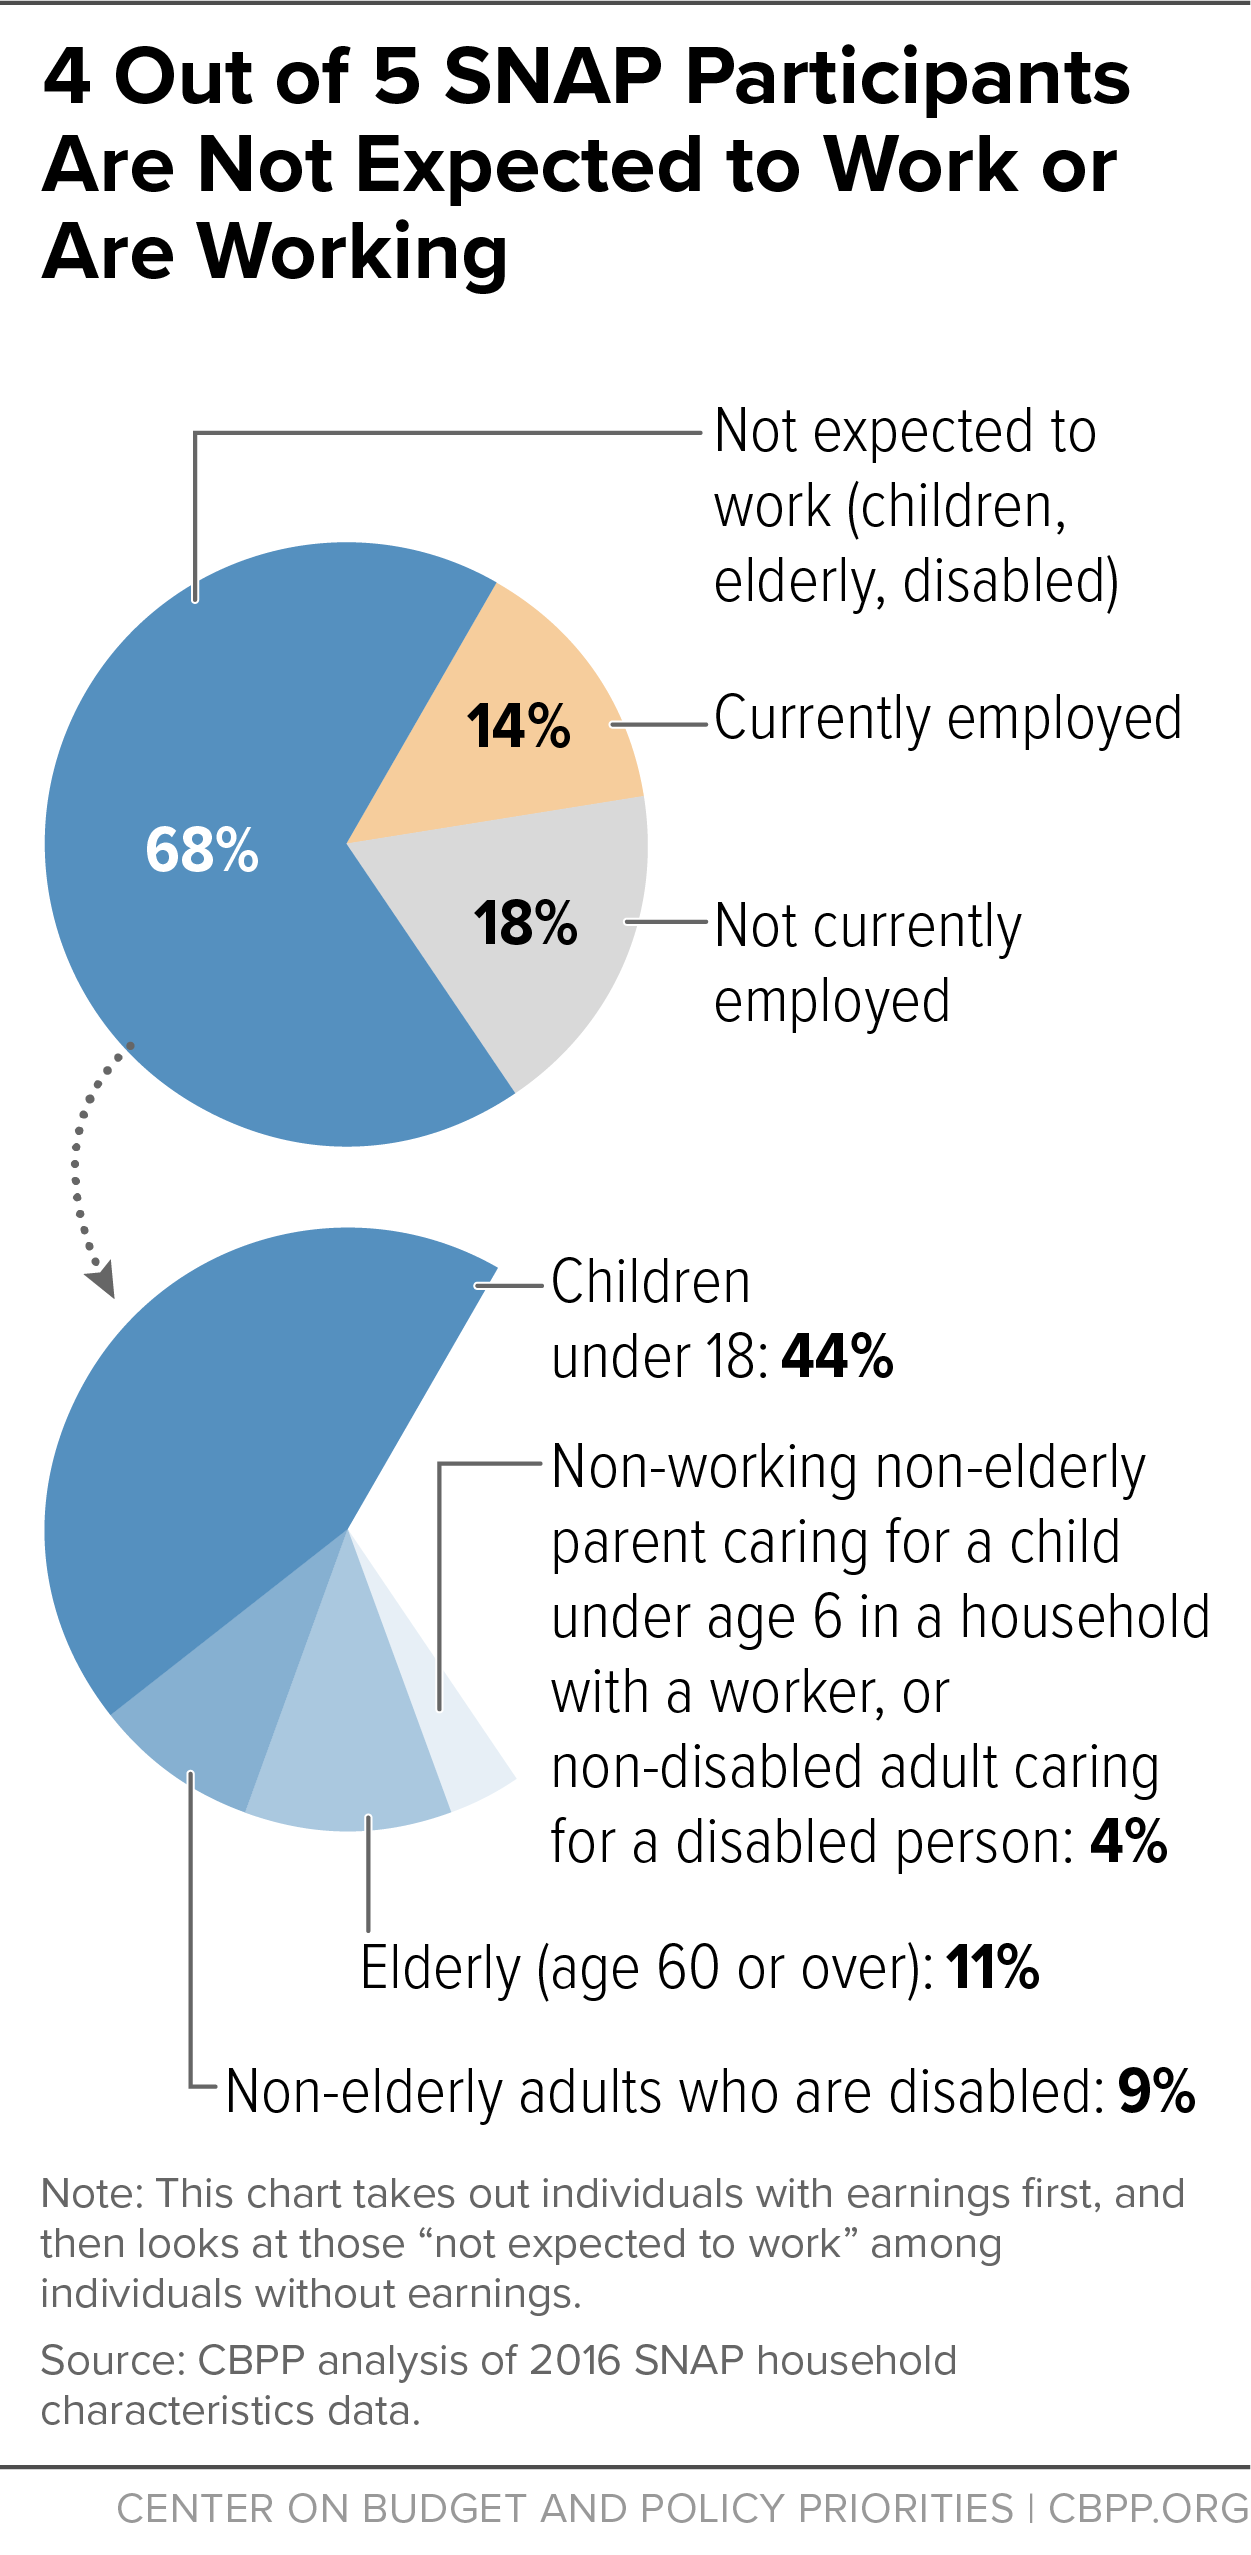 4 Out of 5 SNAP Participants Are Not Expected to Work or Are Working